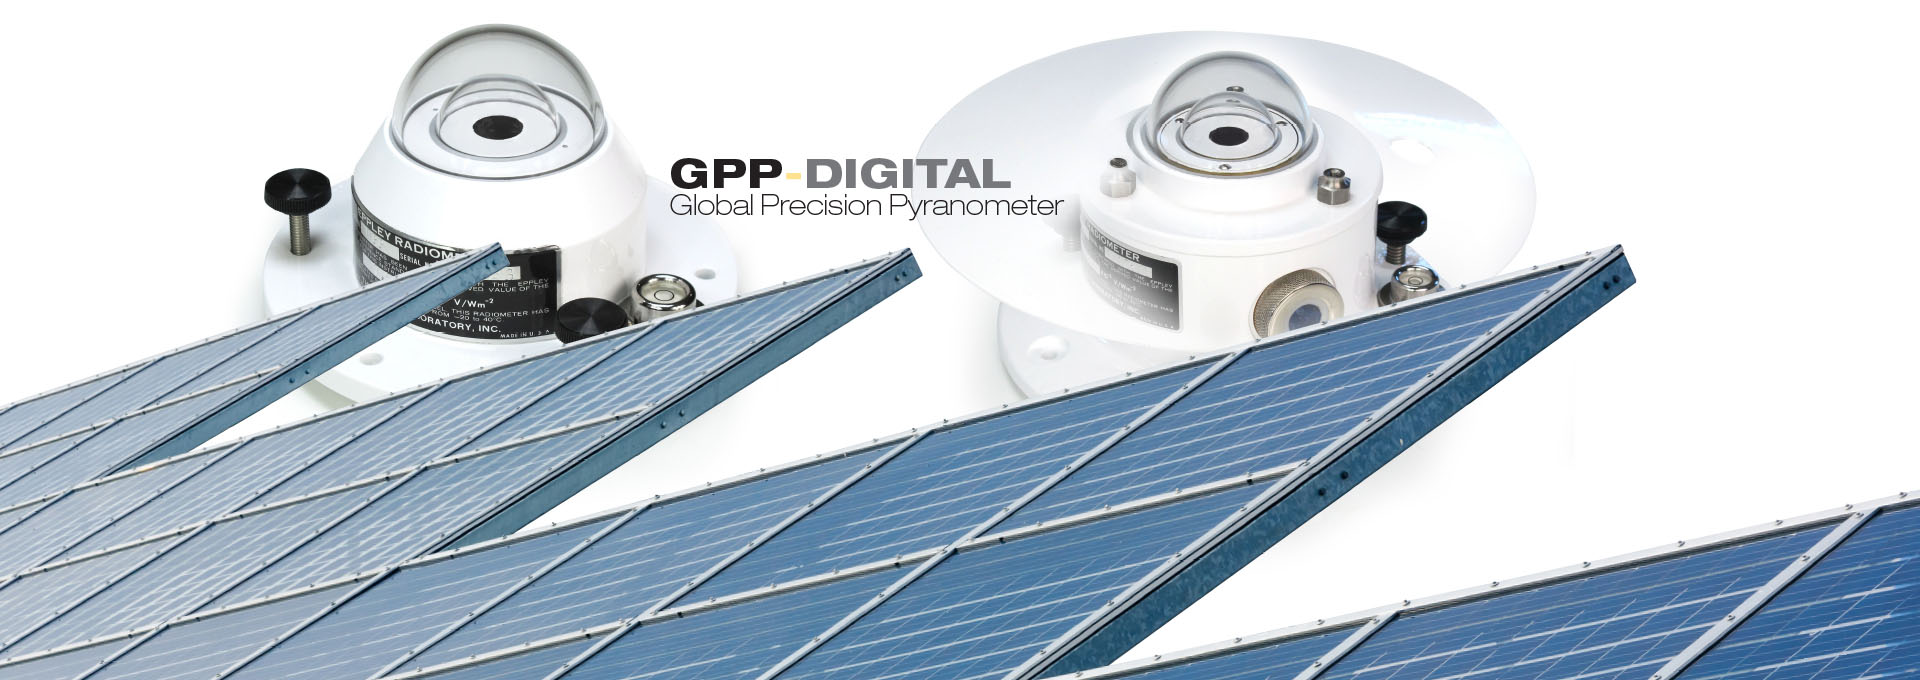 Setting the Industry Standard Since 1917 - See the NEW Global Precision Pyranometer